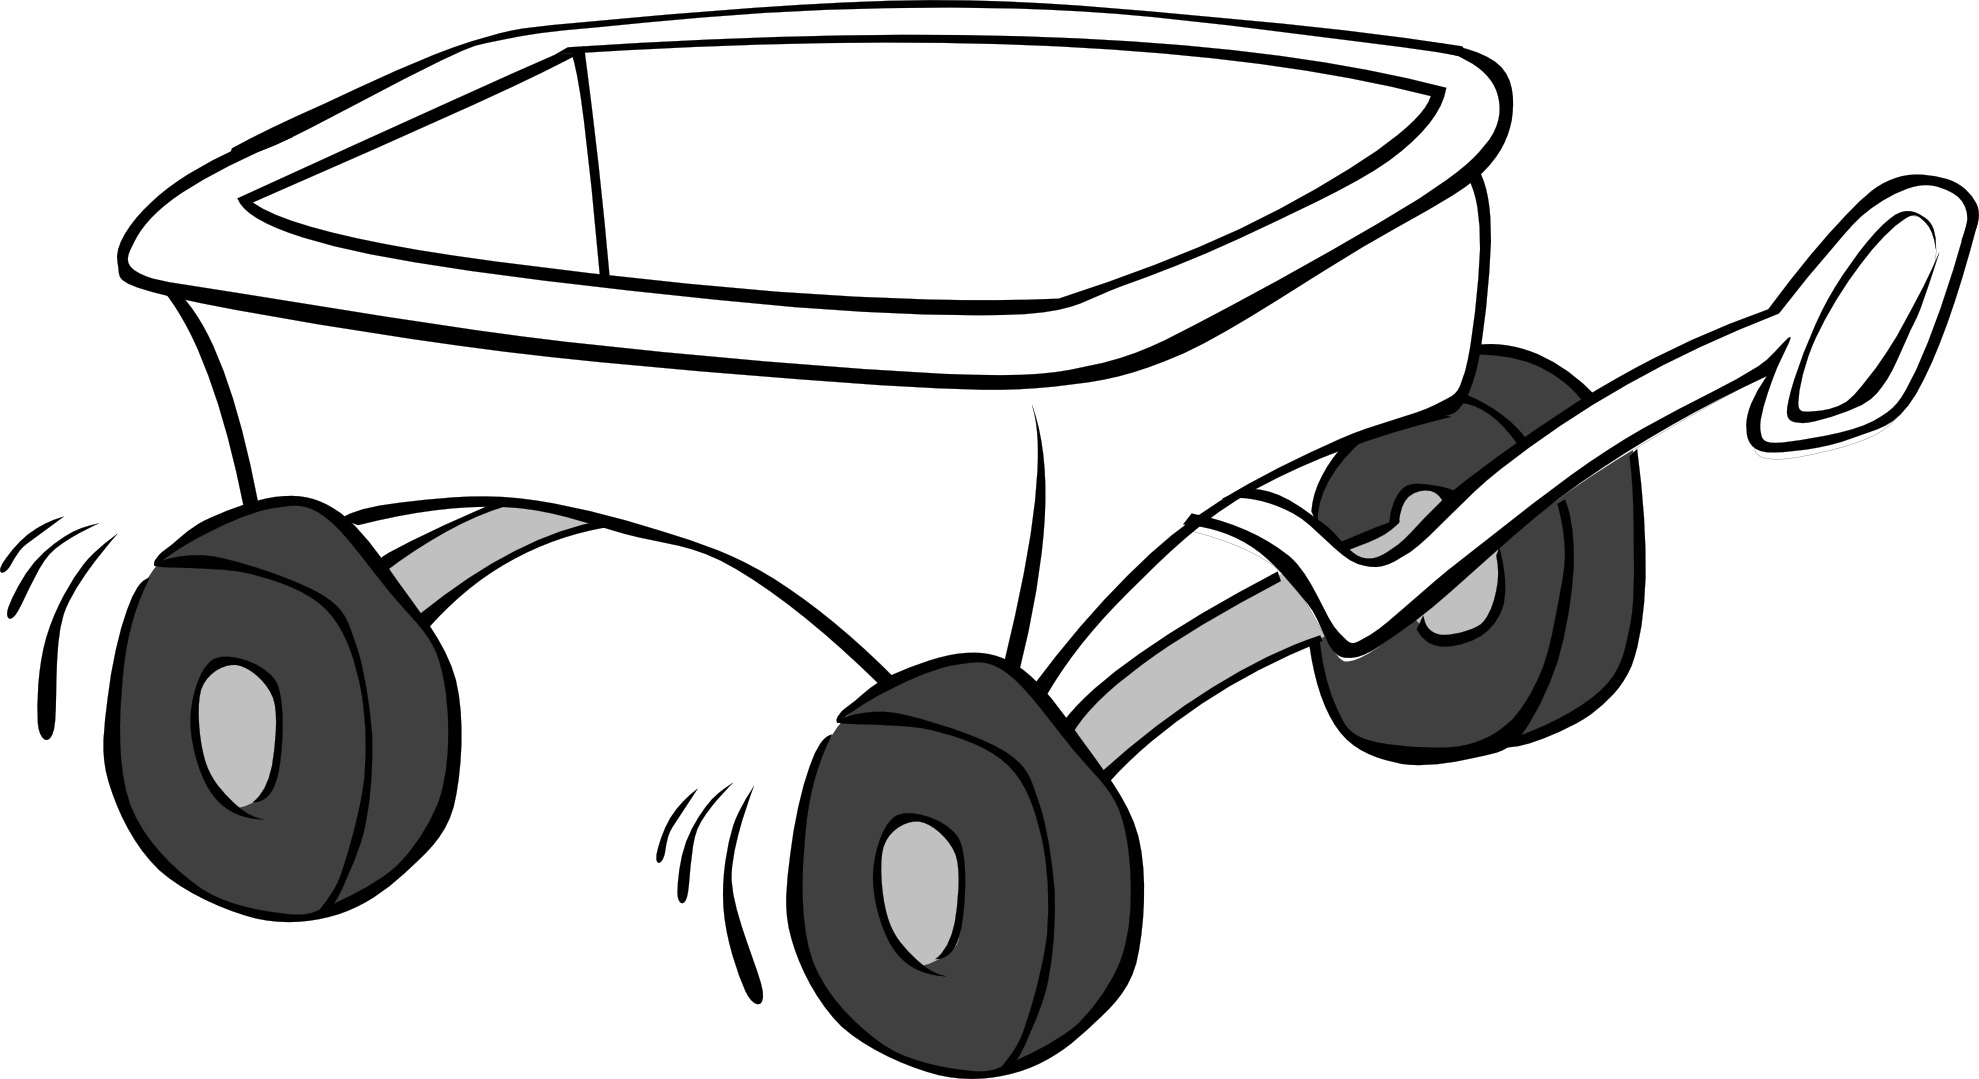 Fresh wagon coloring page. Wheel clipart western